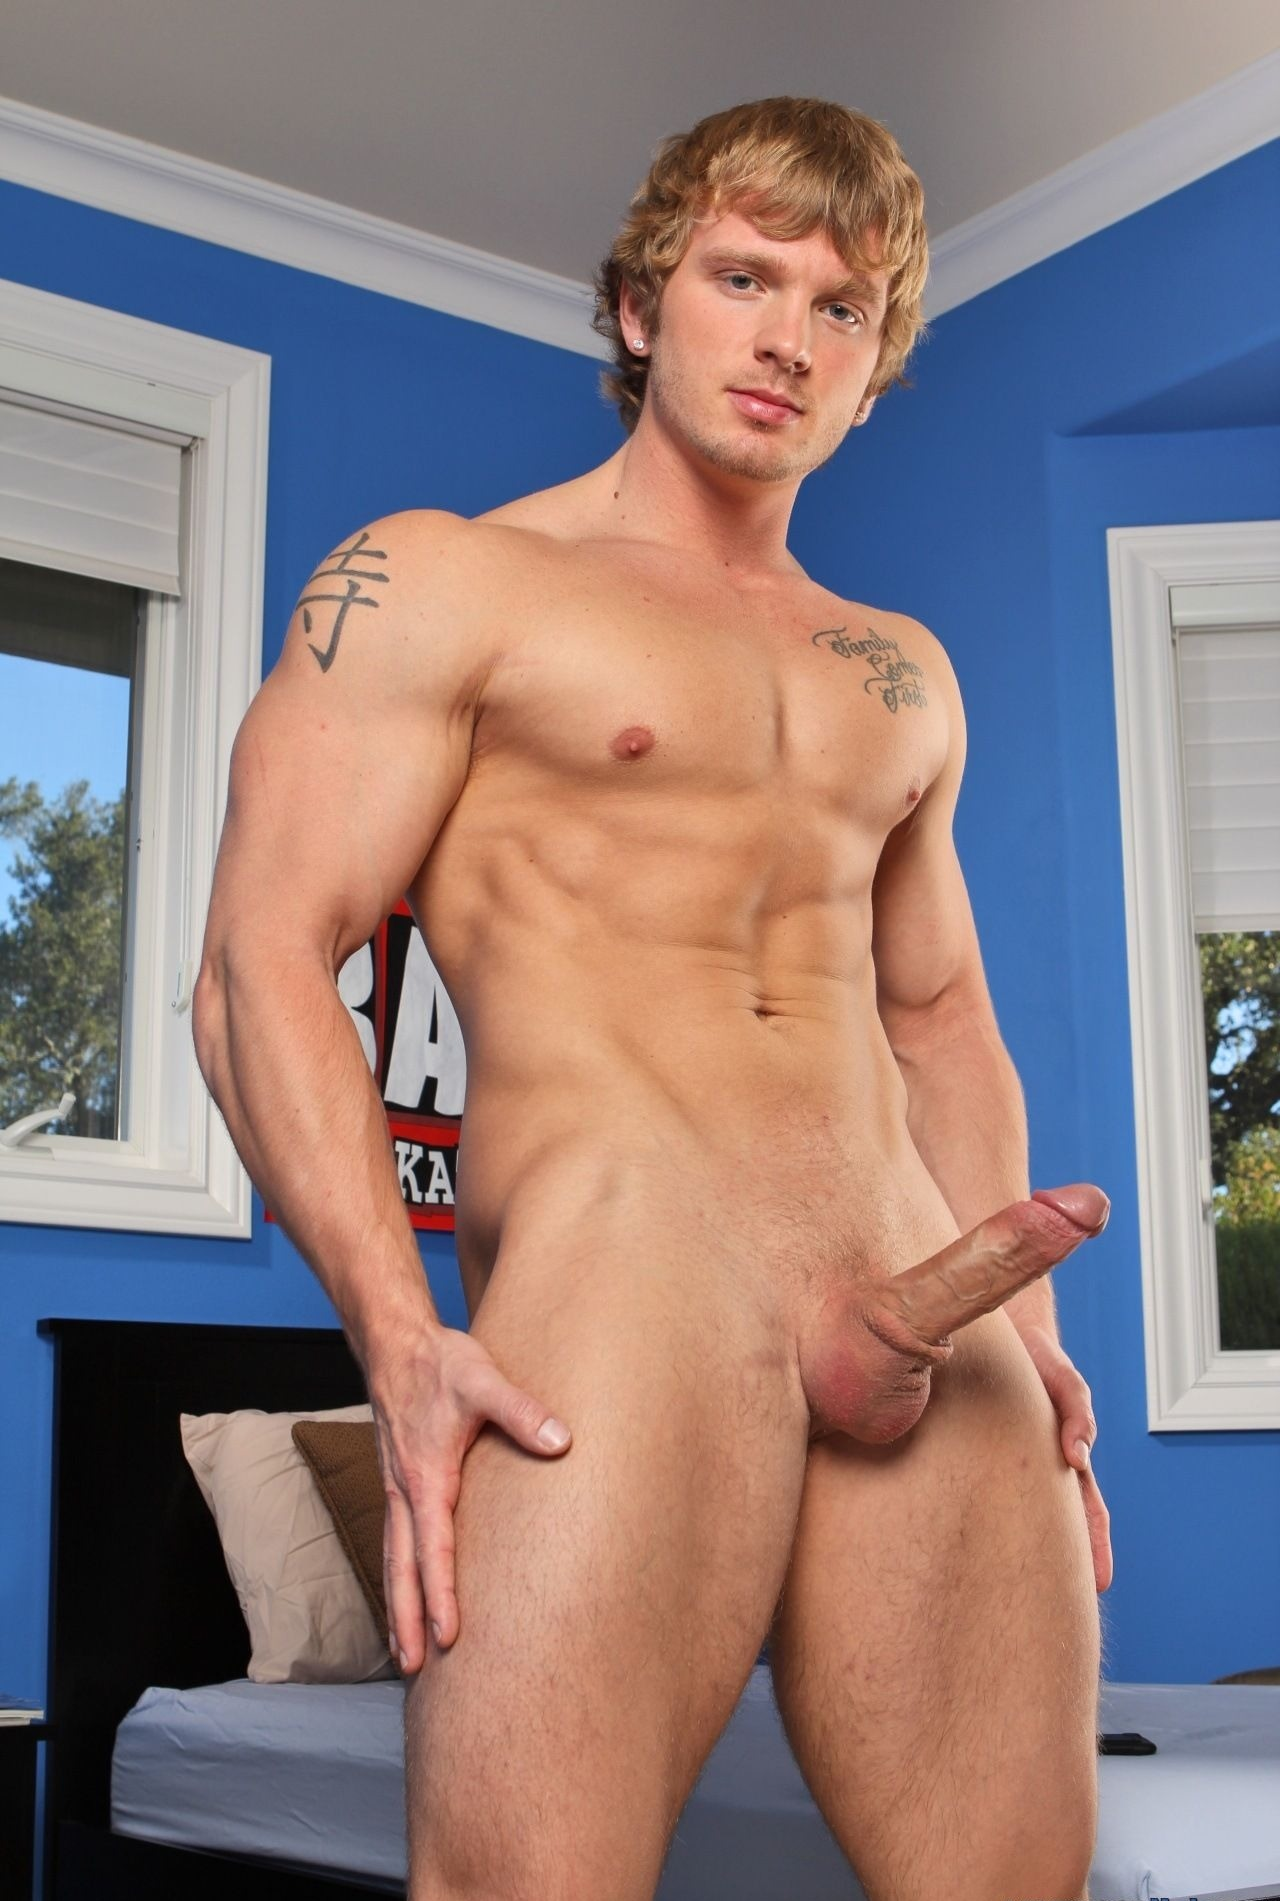 james huntsman gay hot daddy dude men porn